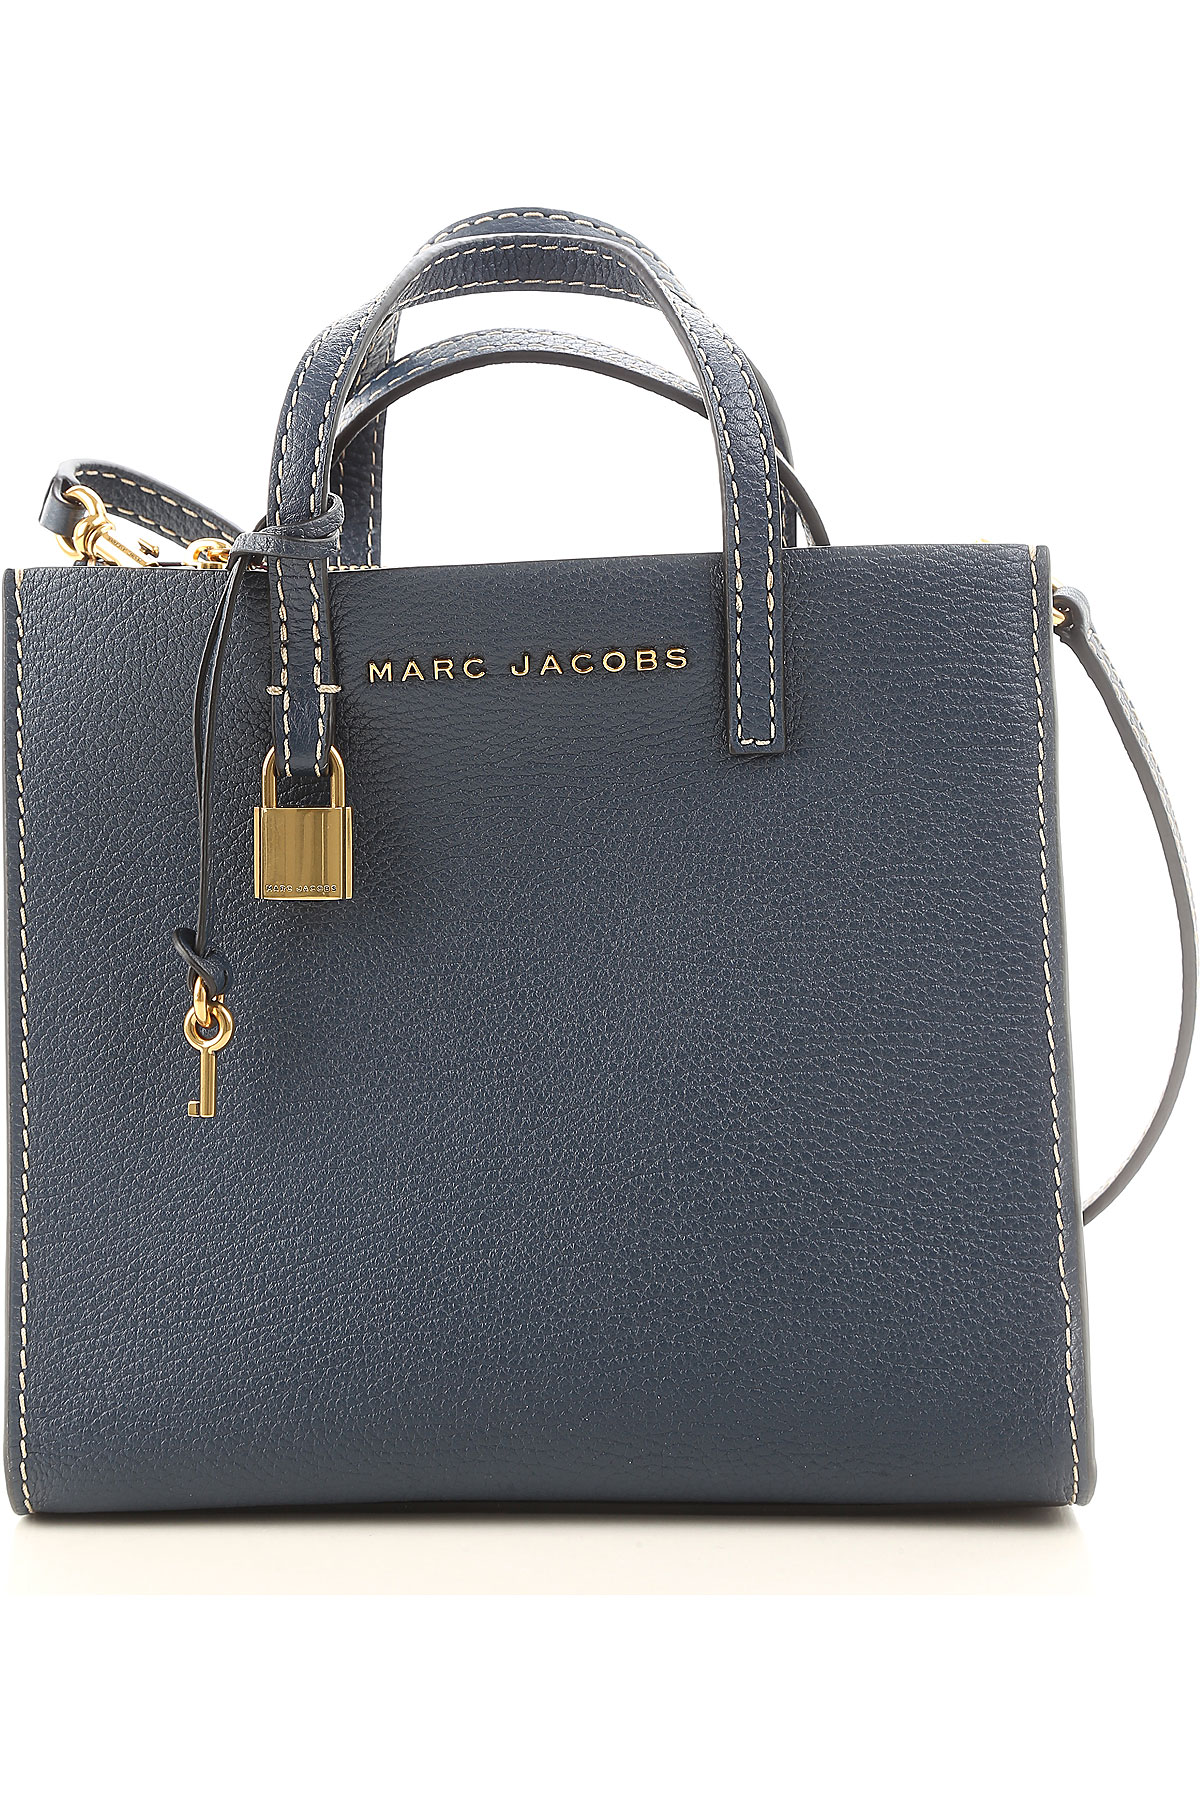 d654cec157 ... Marc Jacobs Handbags. FULL SCREEN. 1) Drag to view product 2) Double  click to start rotation